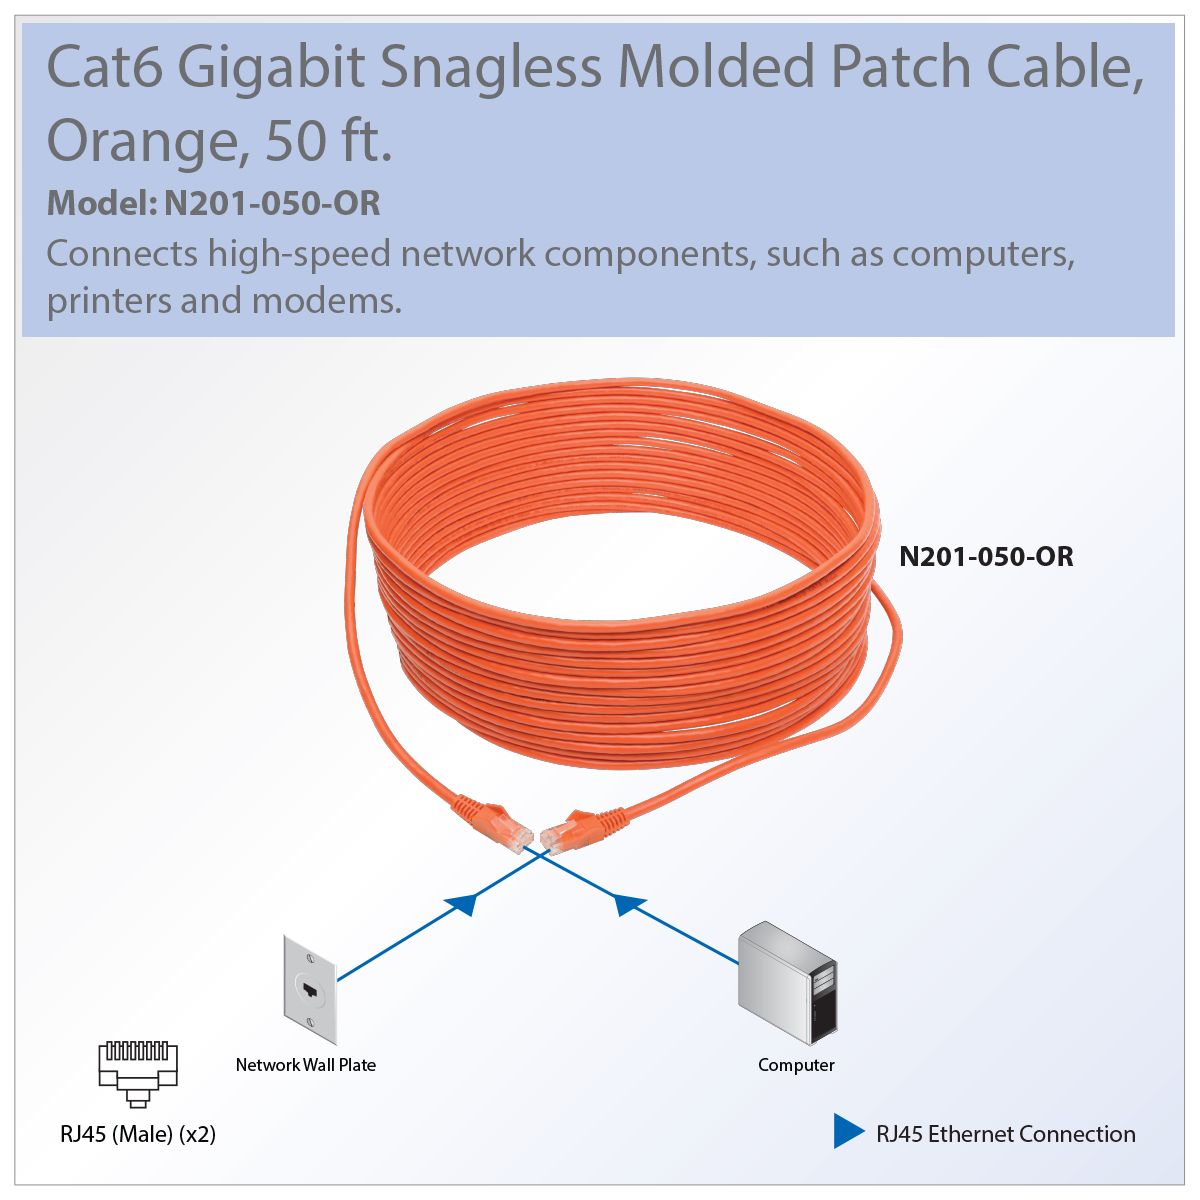 Tripp Lite Cat6 Gbe Snagless Molded Patch Cable Utp Orange Rj45 M 50ft Wiring Diagram How To Wire Your House With Cat5e Or Recommended For Connecting Components In Gigabit Ethernet Network